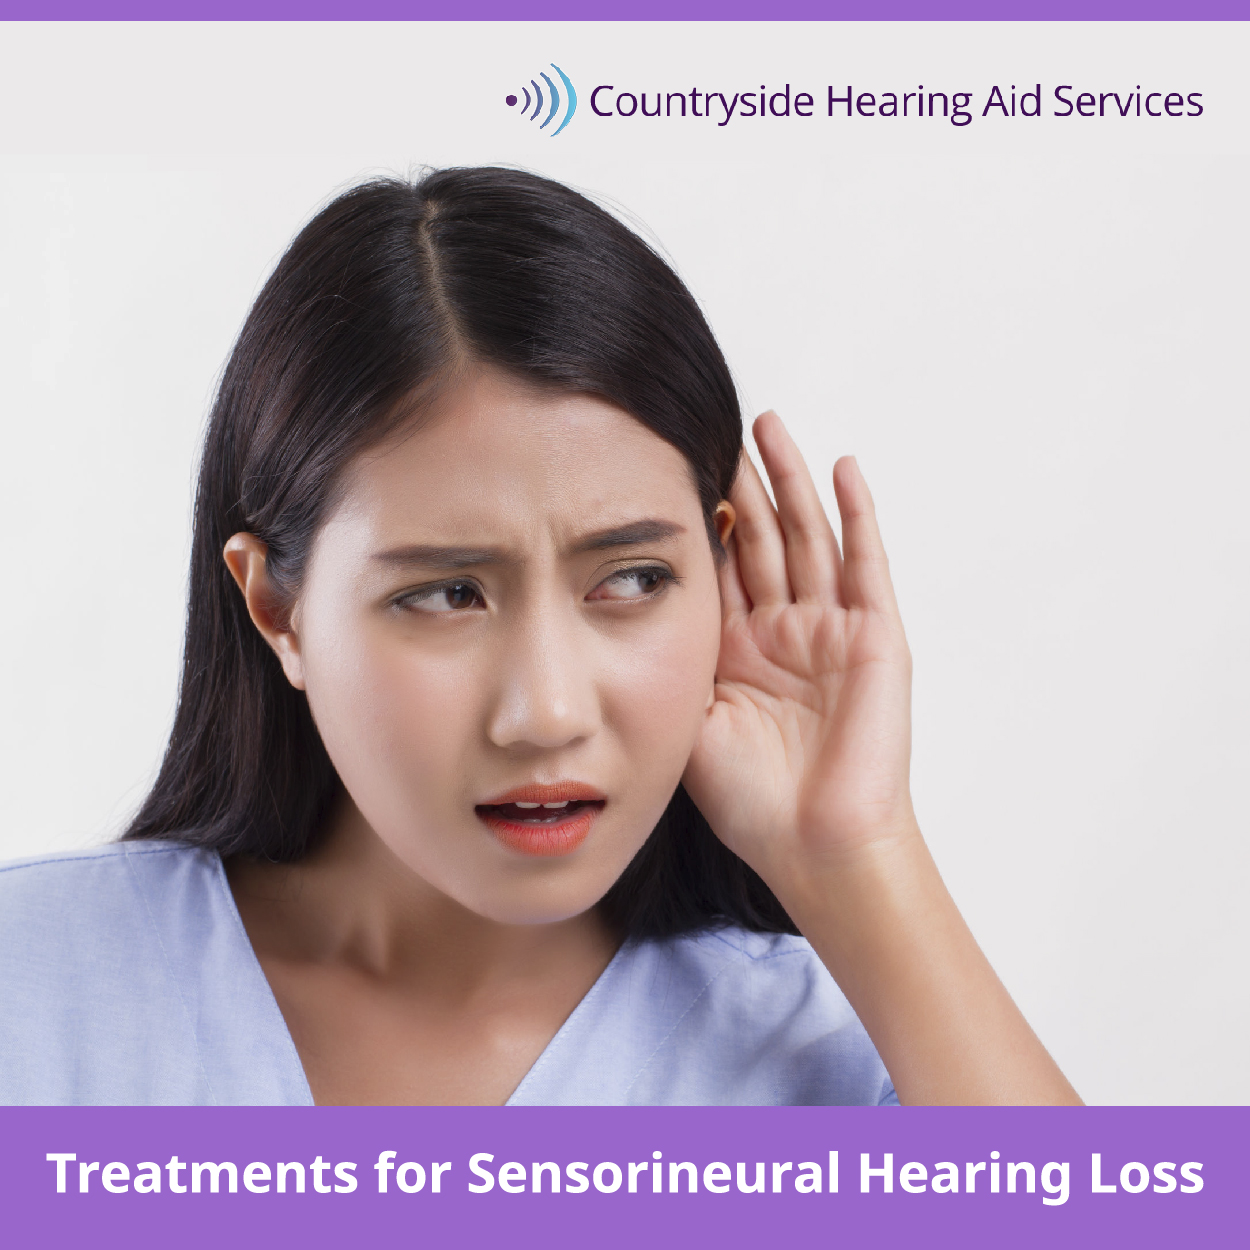 Treatments for Sensorineural Hearing Loss